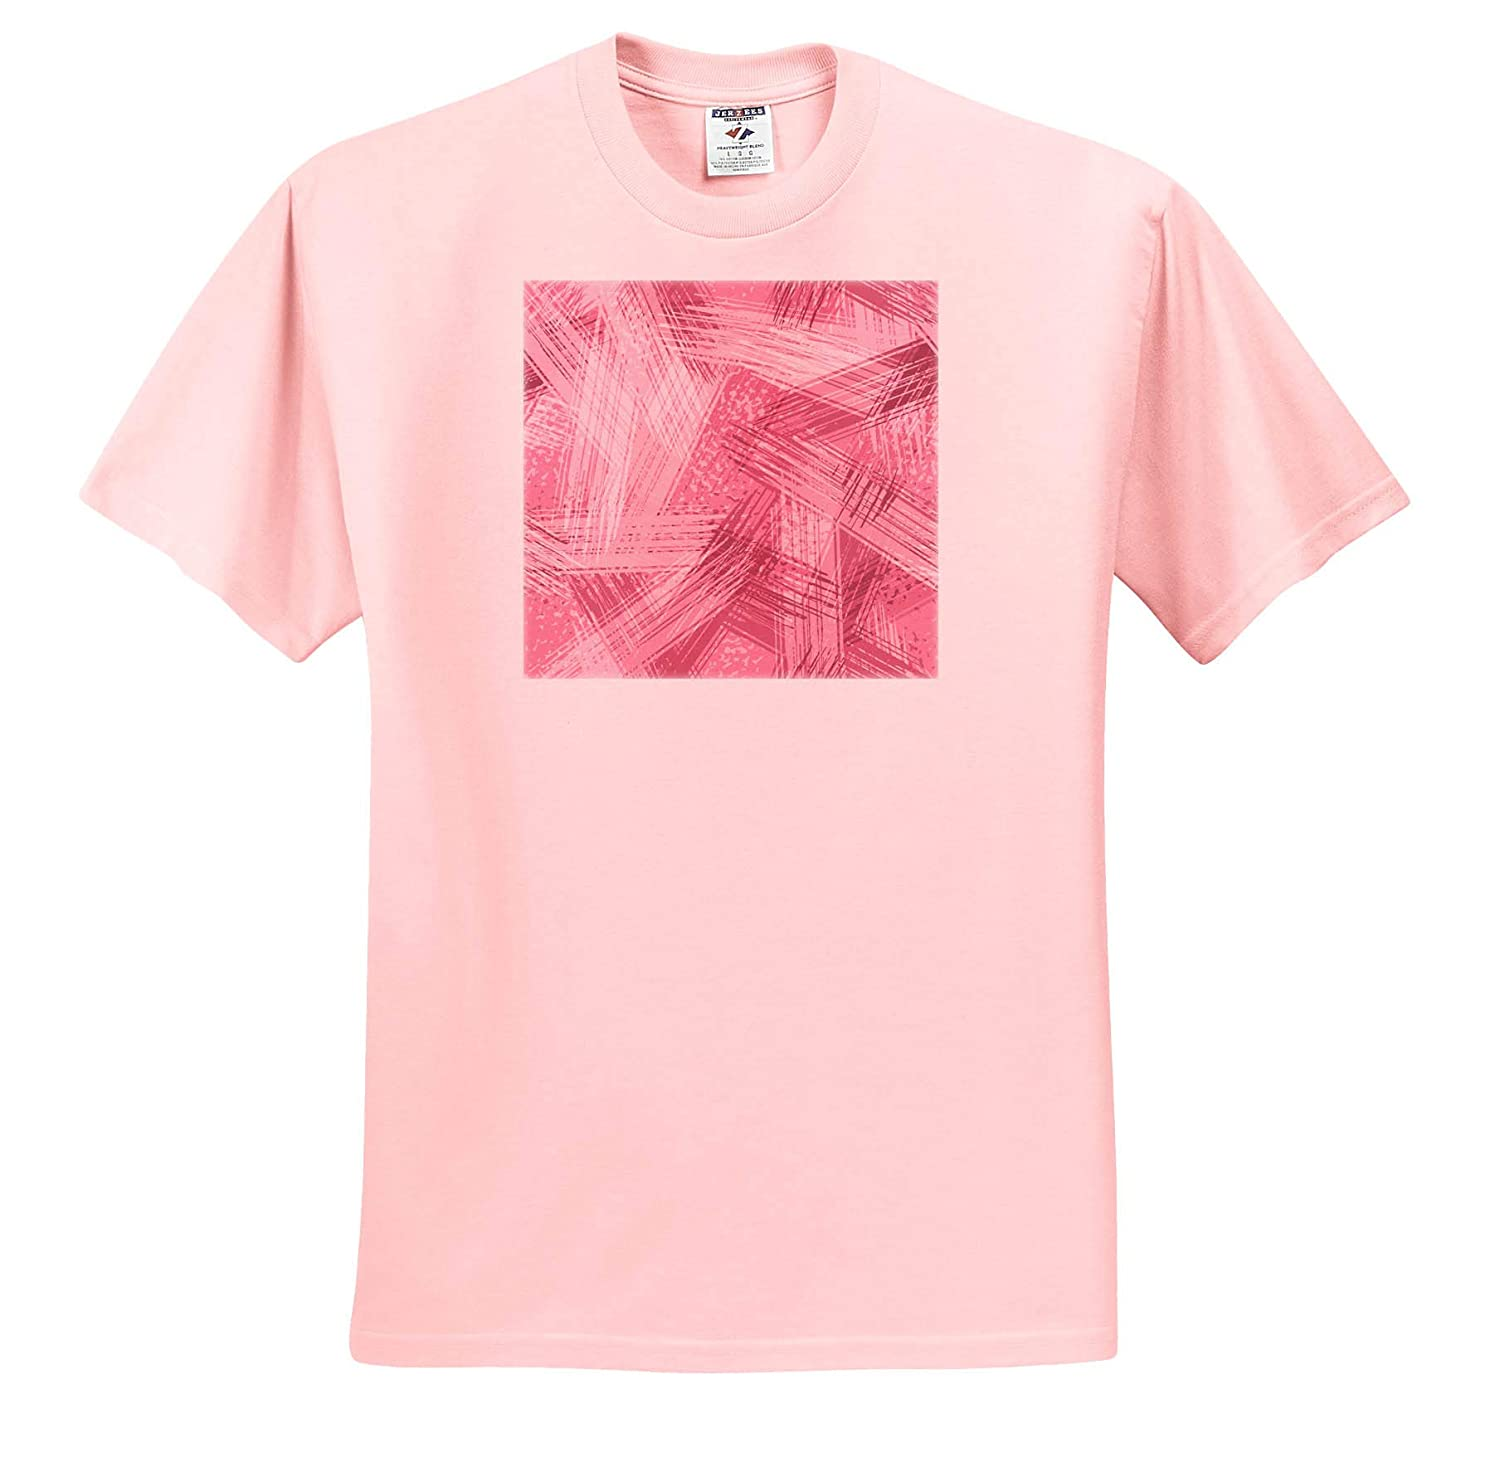 ts/_317664 3dRose Anne Marie Baugh Contemporary Pink On Pink Image of Paint Brush Strokes Patterns Adult T-Shirt XL